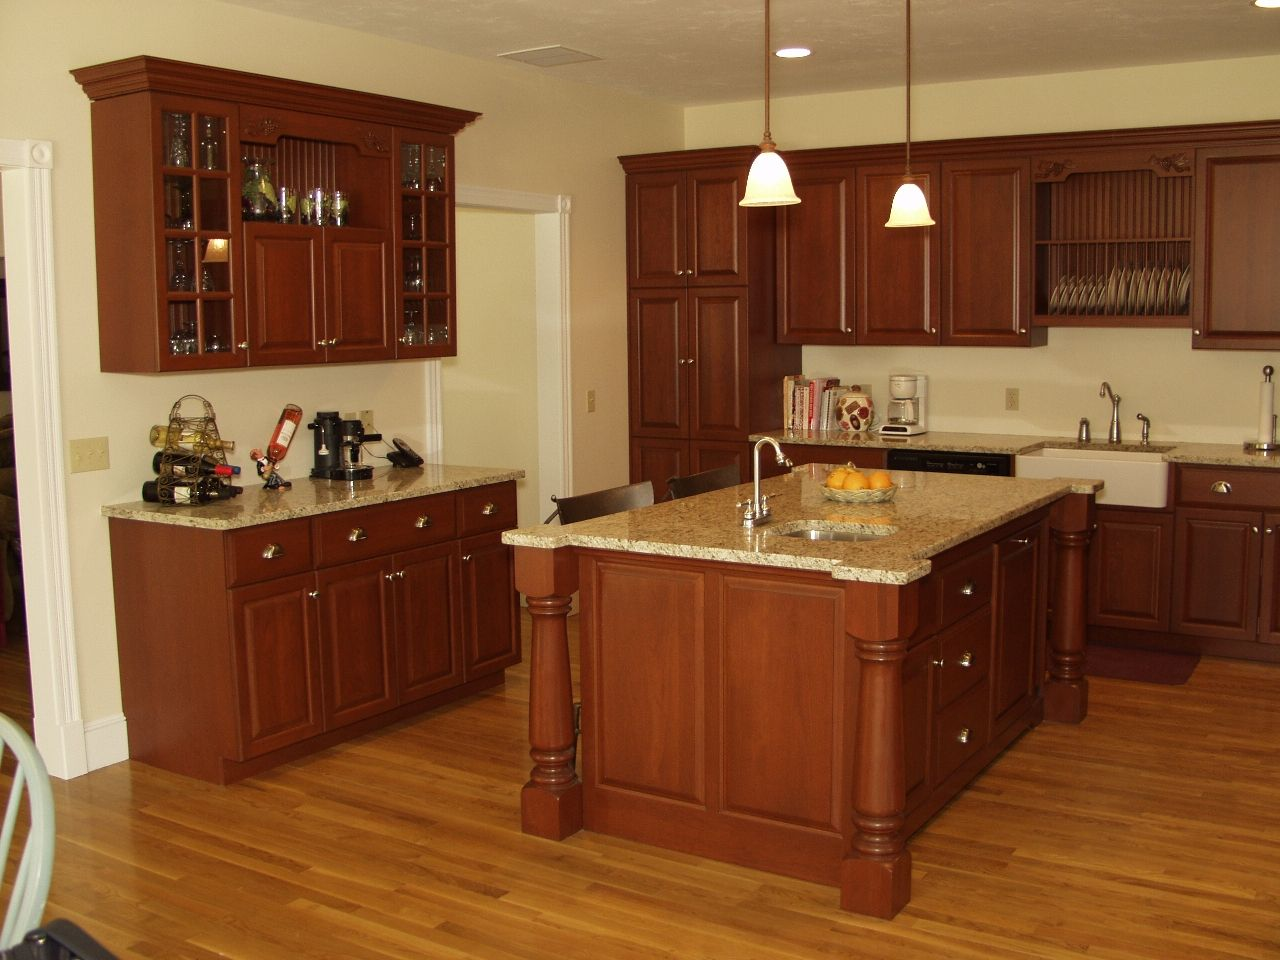 kitchen countertop prices Kitchen Quartz Countertops With Oak Cabinets Cabinets With White Quartz Countertops Quartz Countertop With Cabinet